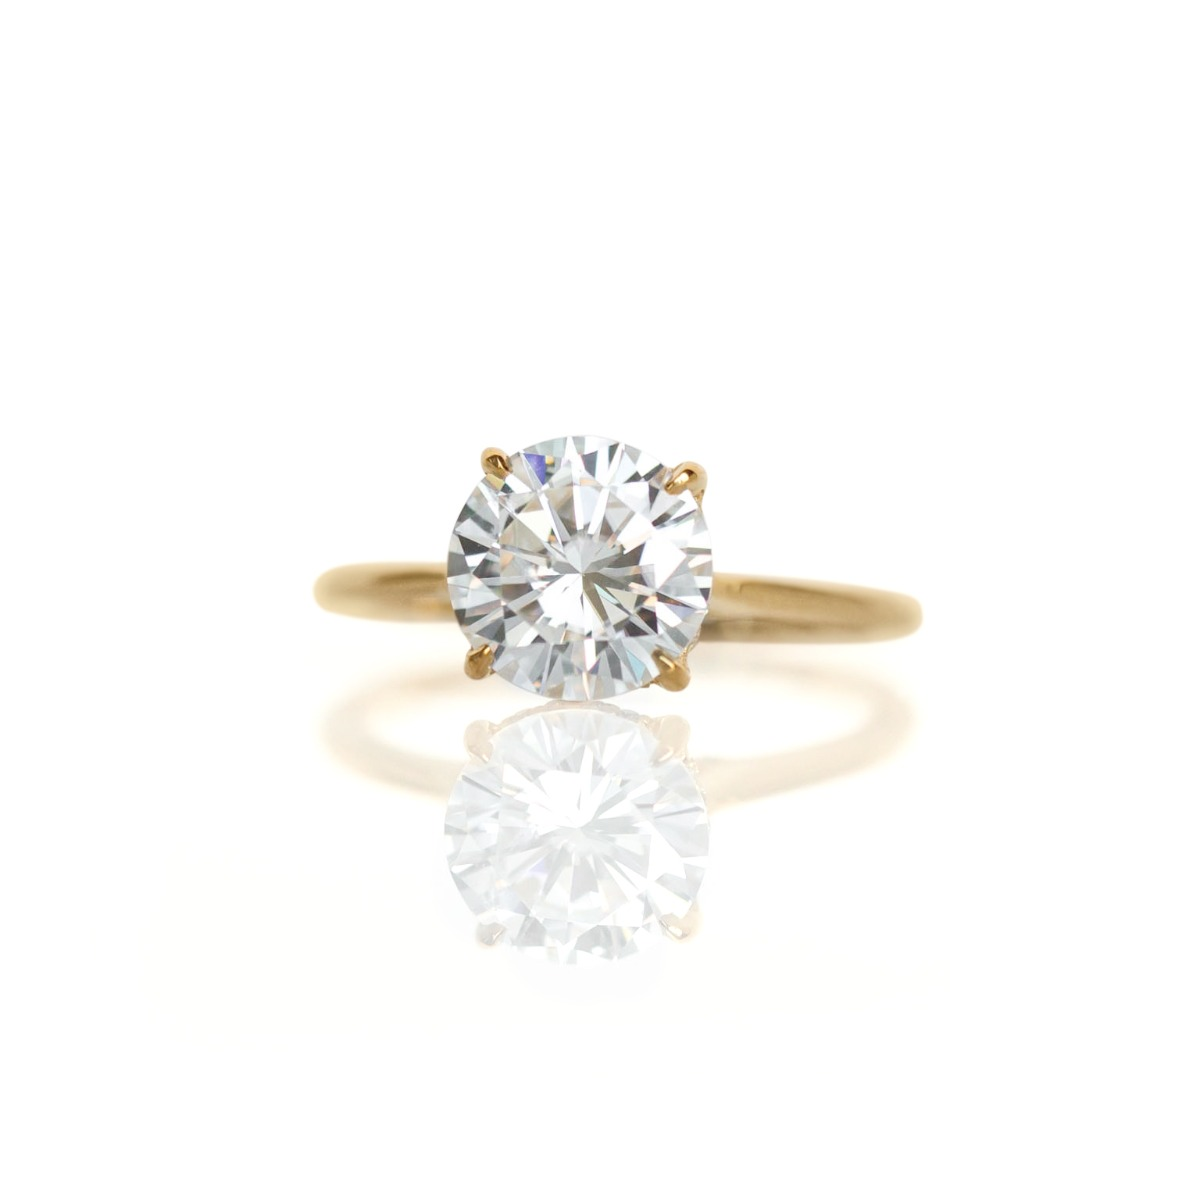 DBK Classic Solitaire Setting With Diamond Basket & Bridge In Yellow Gold